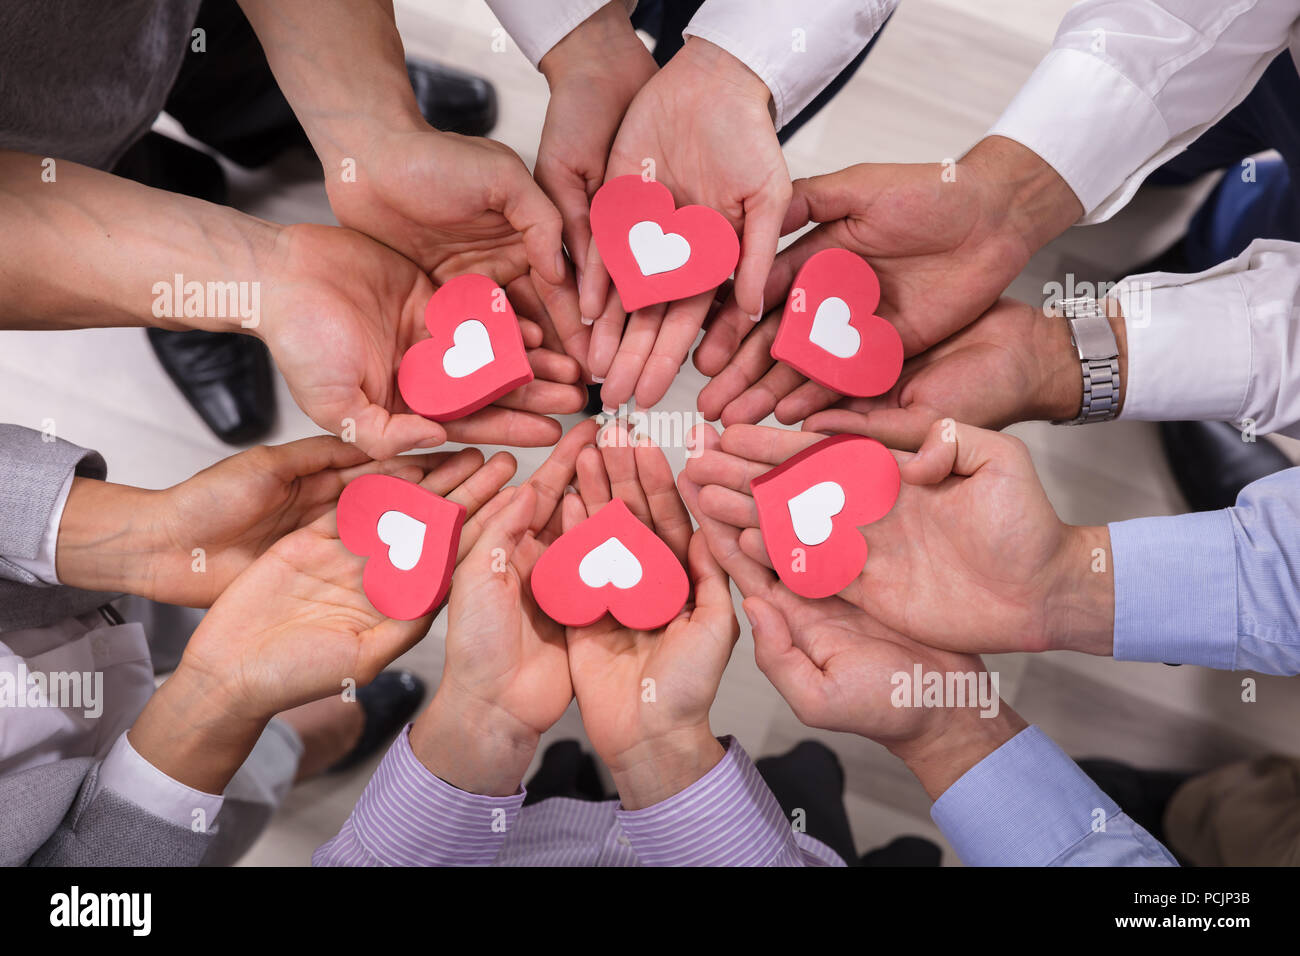 High Angle View Of Businesspeople Holding Red Hearts - Stock Image